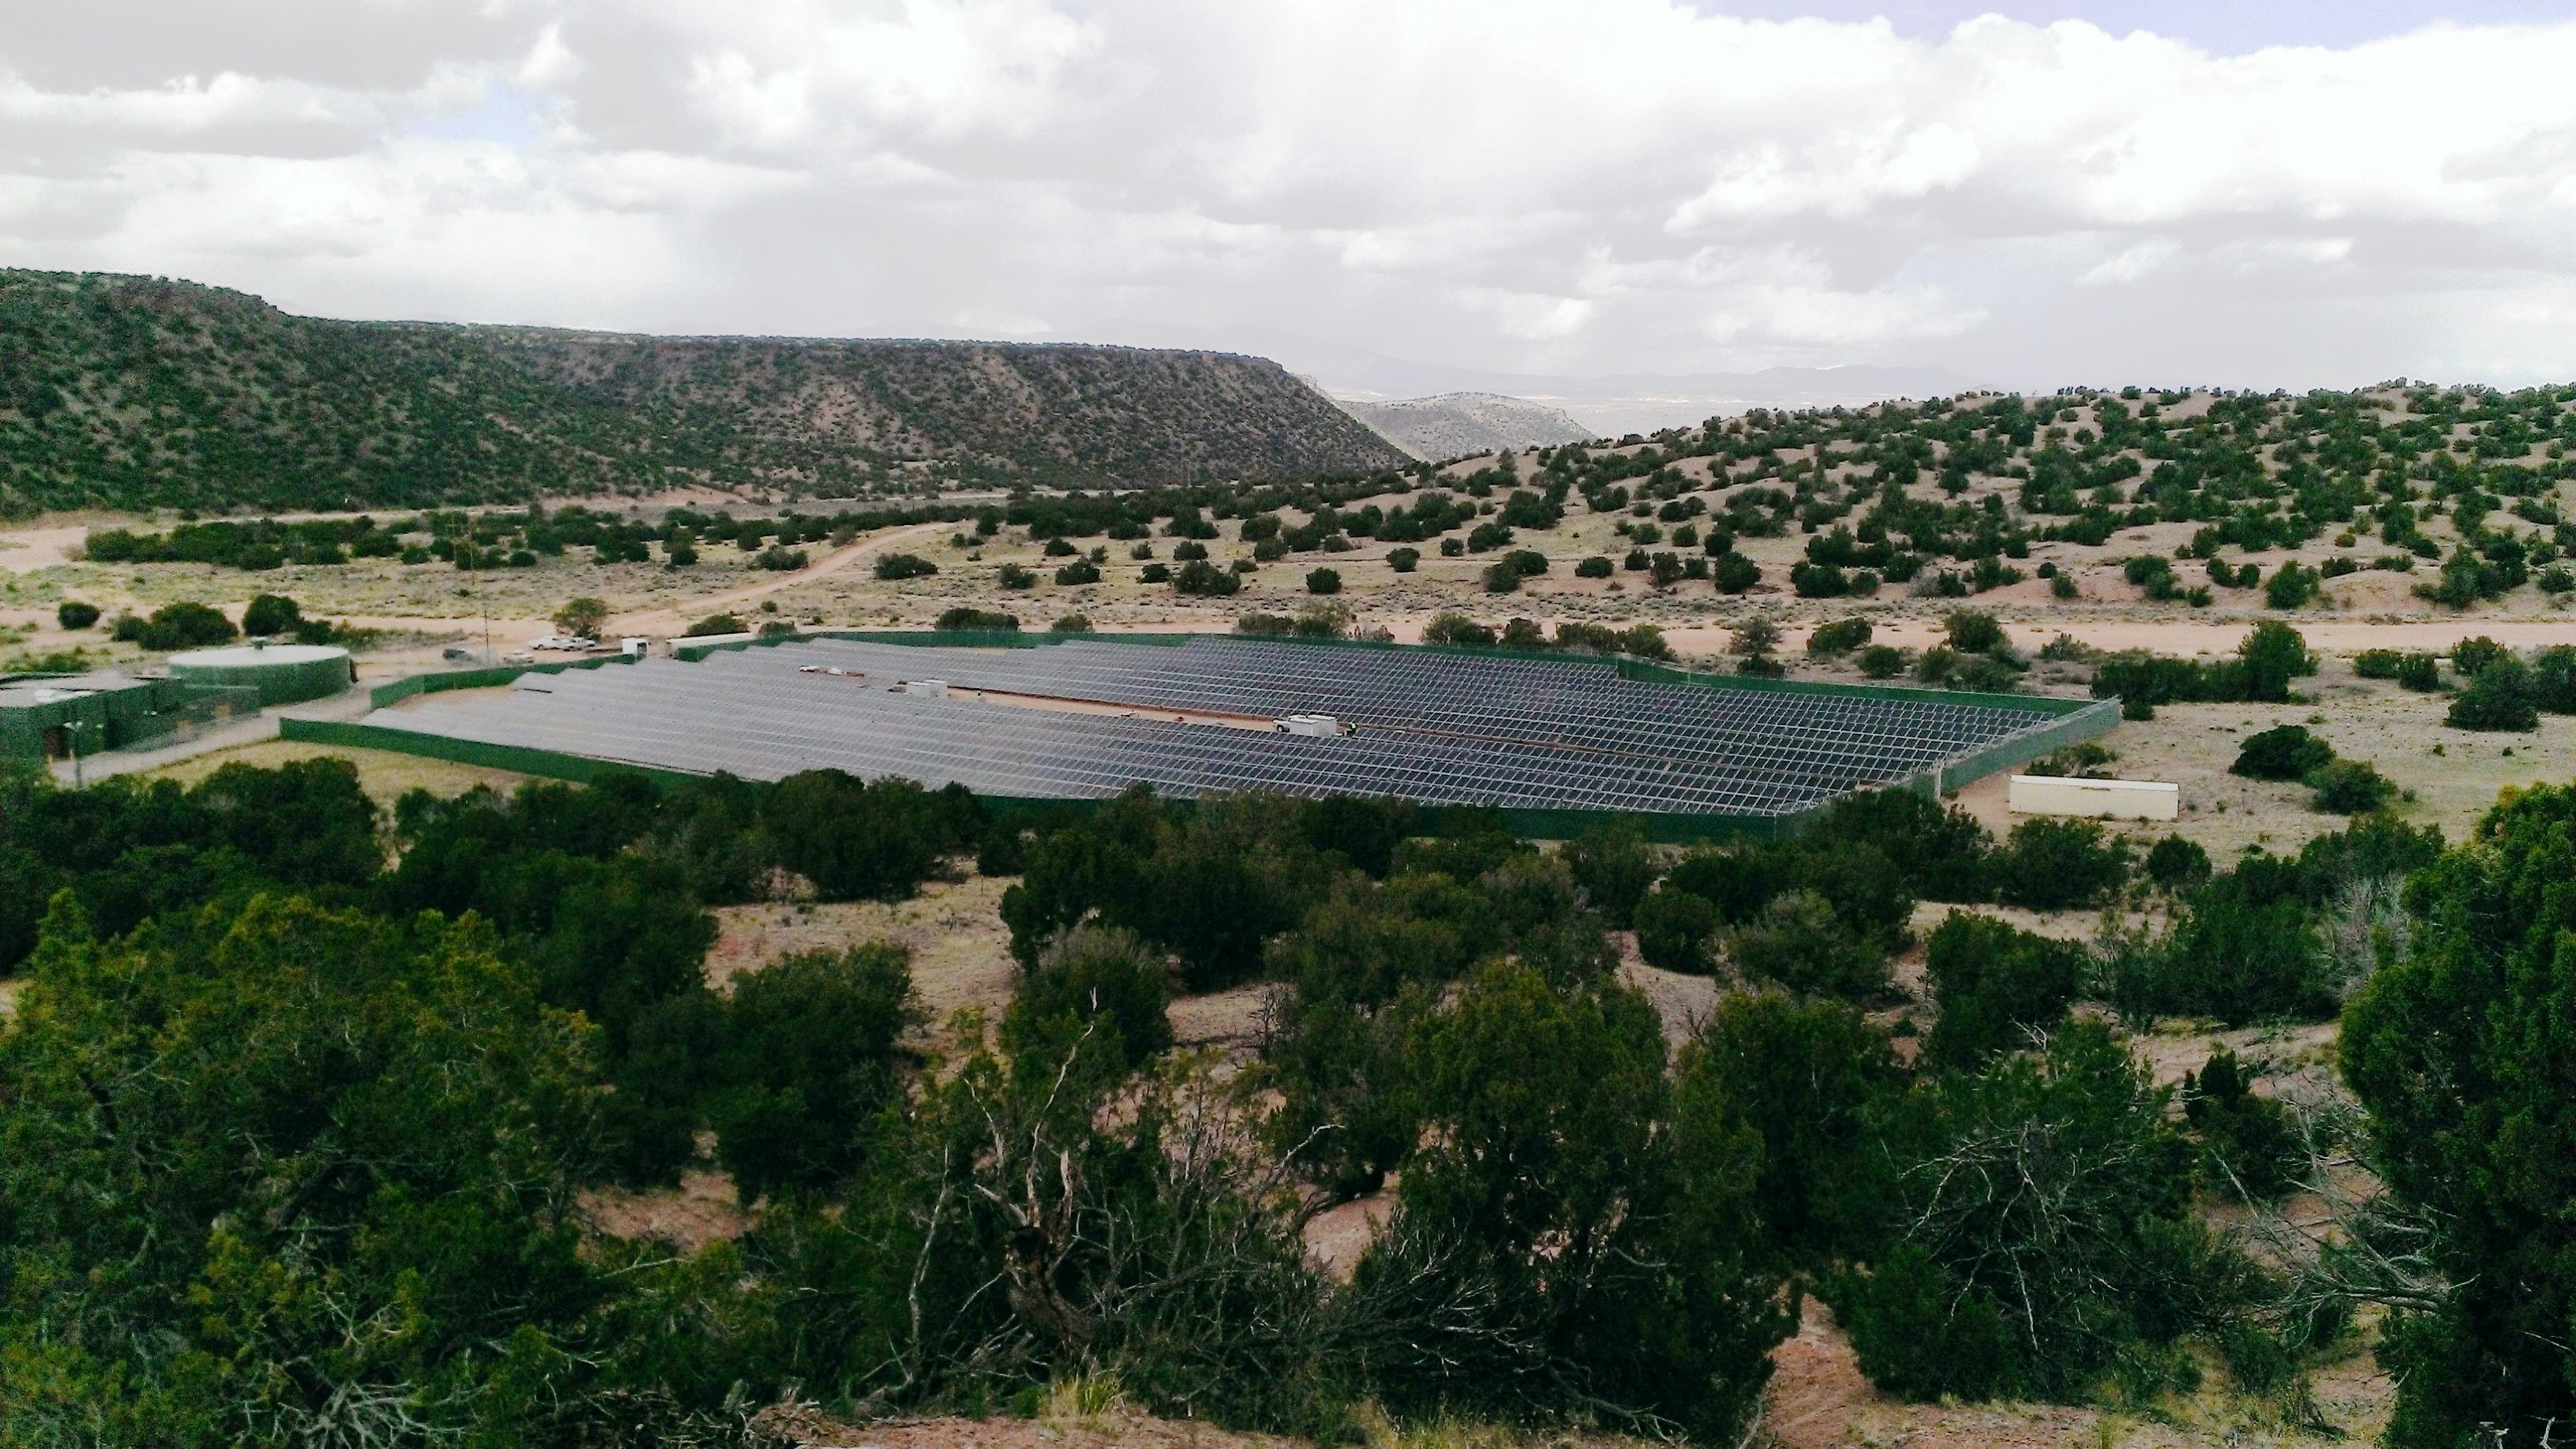 The Buckman Direct Diversion 2A Solar Field